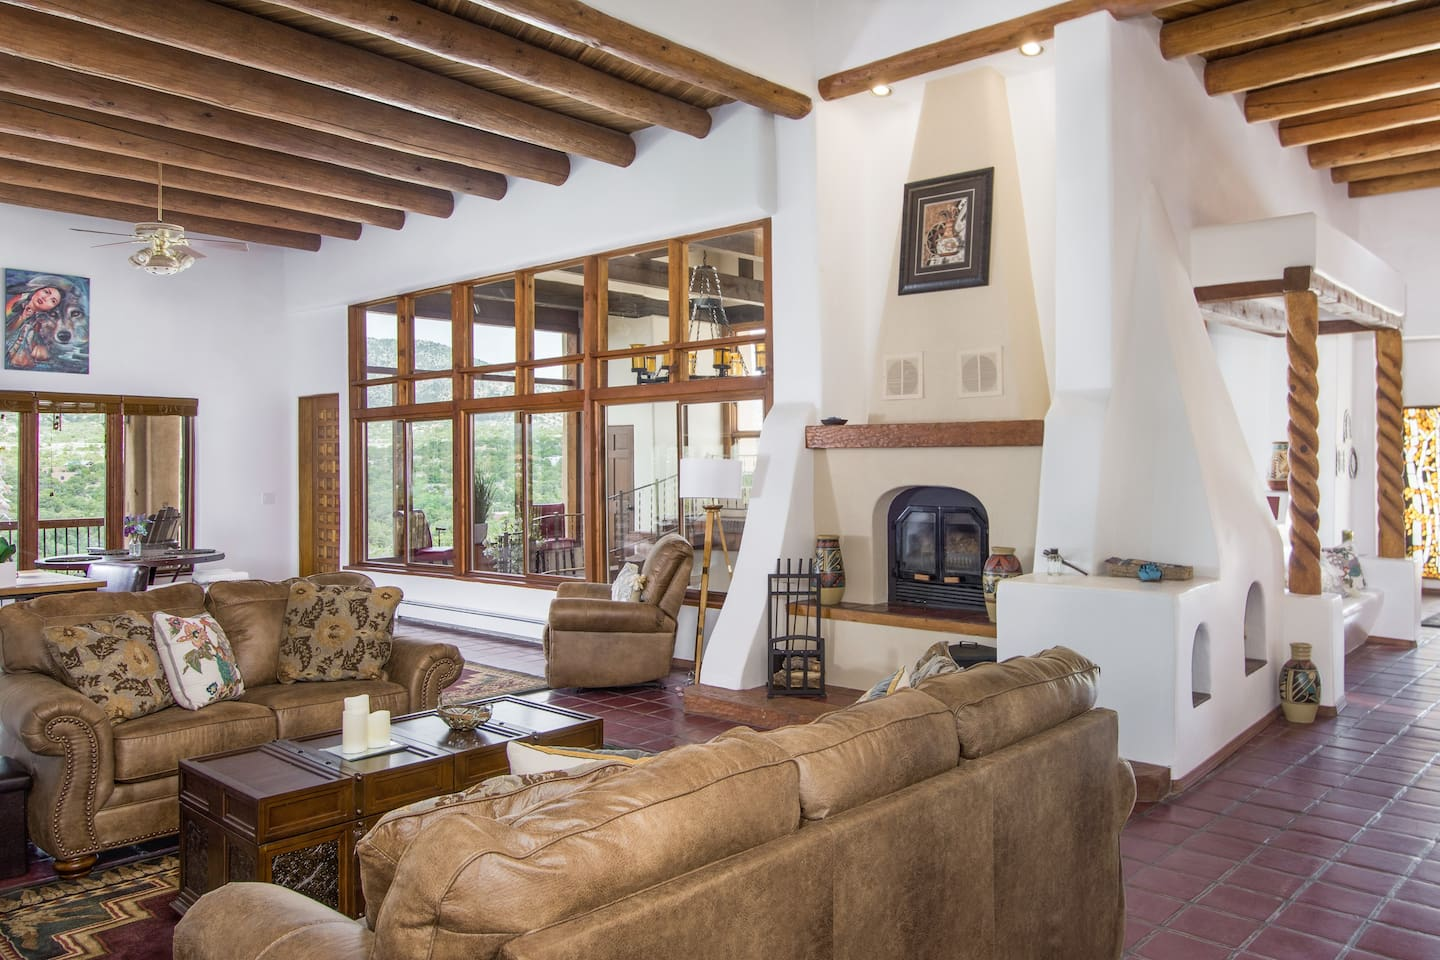 Welcome to Santa Fe! This 3-unit rental is professionally managed by TurnKey Vacation Rentals.